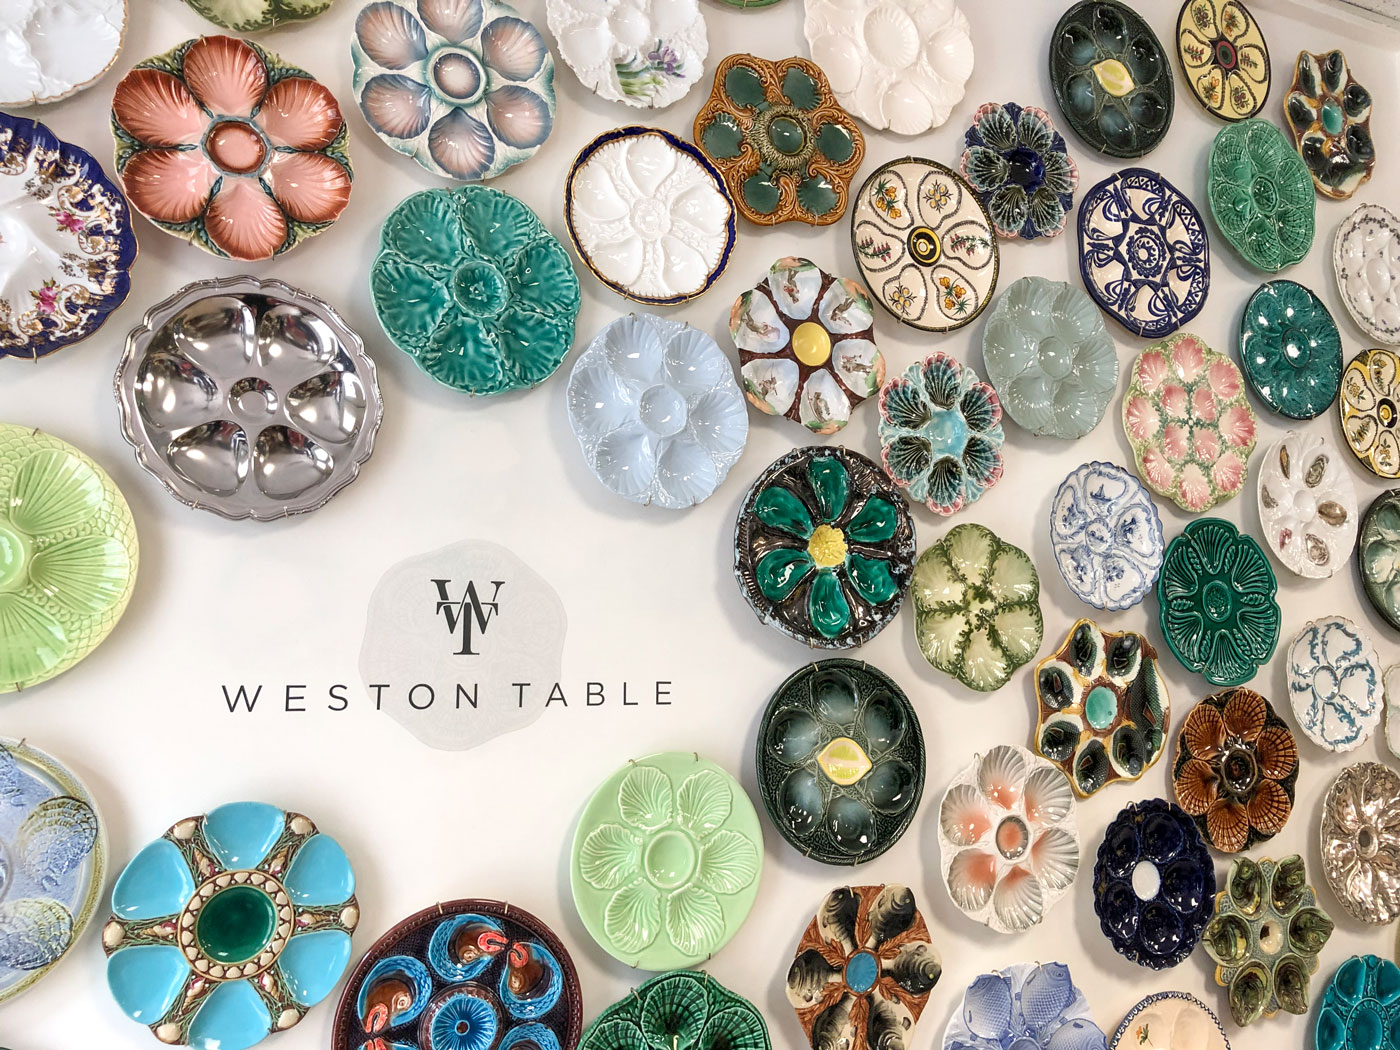 Weston Table's ever changing collection of vintage majolica oyster plates